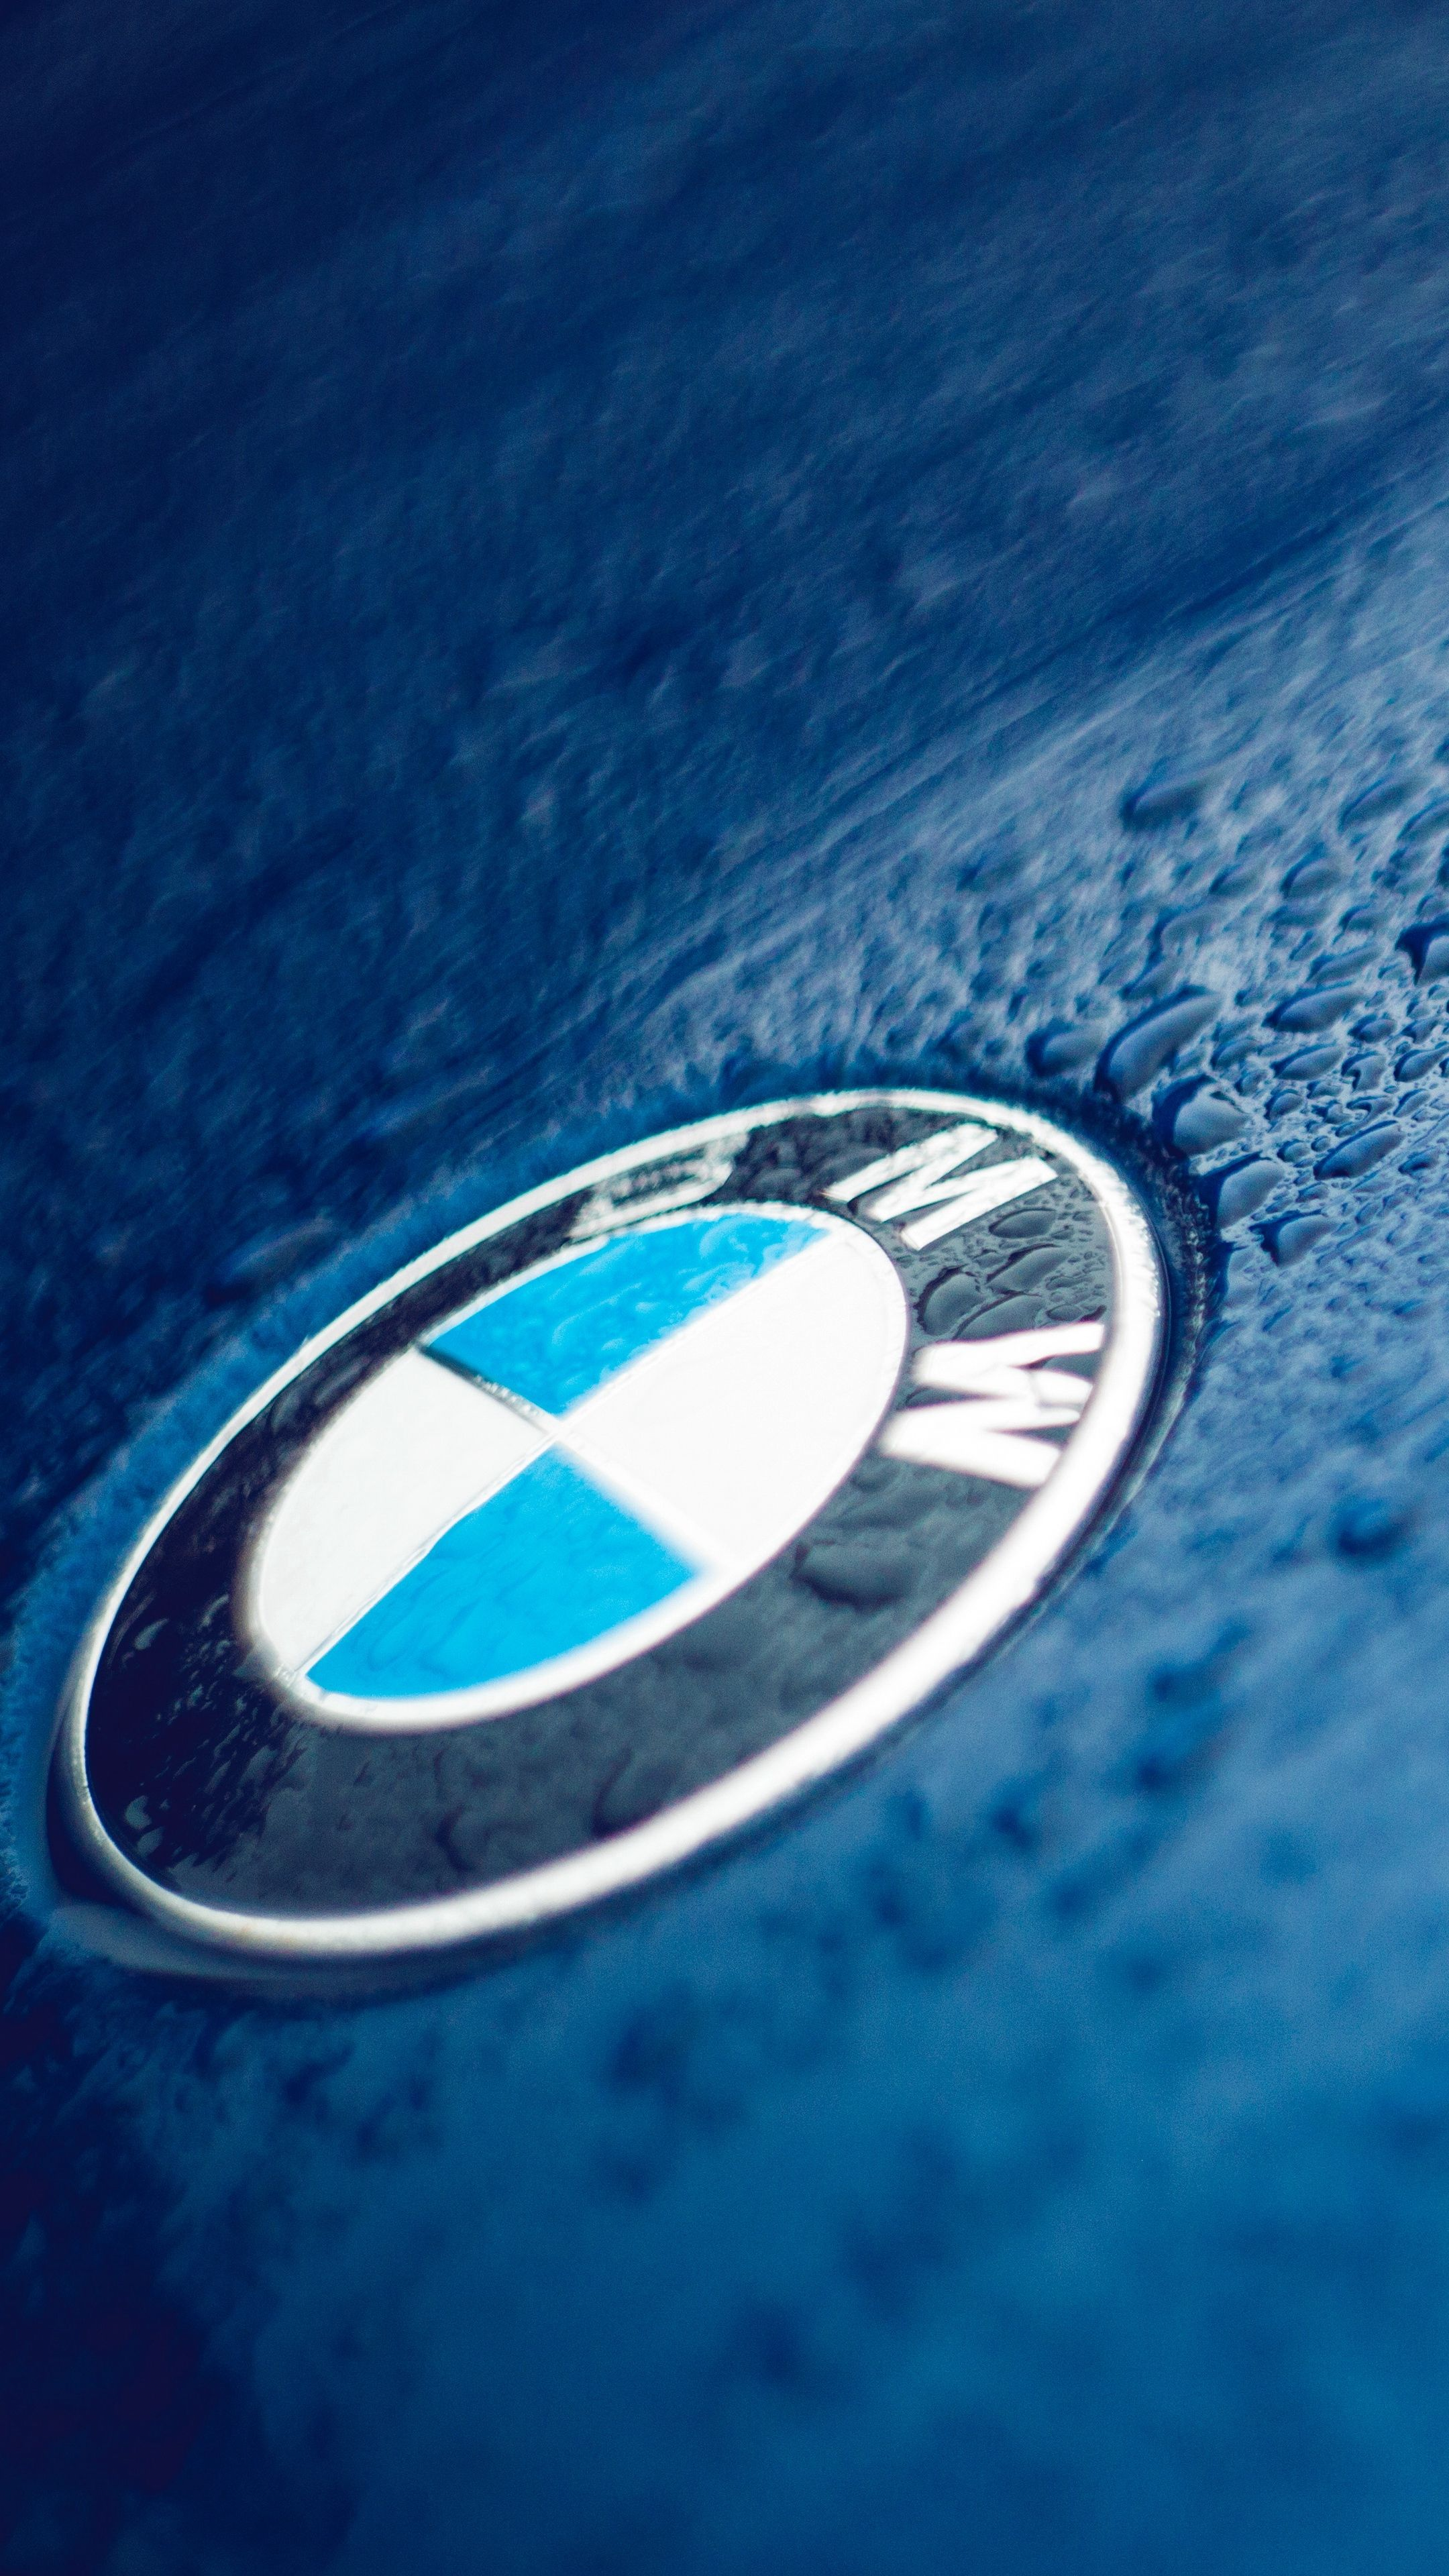 Cars Bmw Logo Drops Wallpapers Hd 4k Background For Android Bmw Wallpapers Bmw Logo Bmw